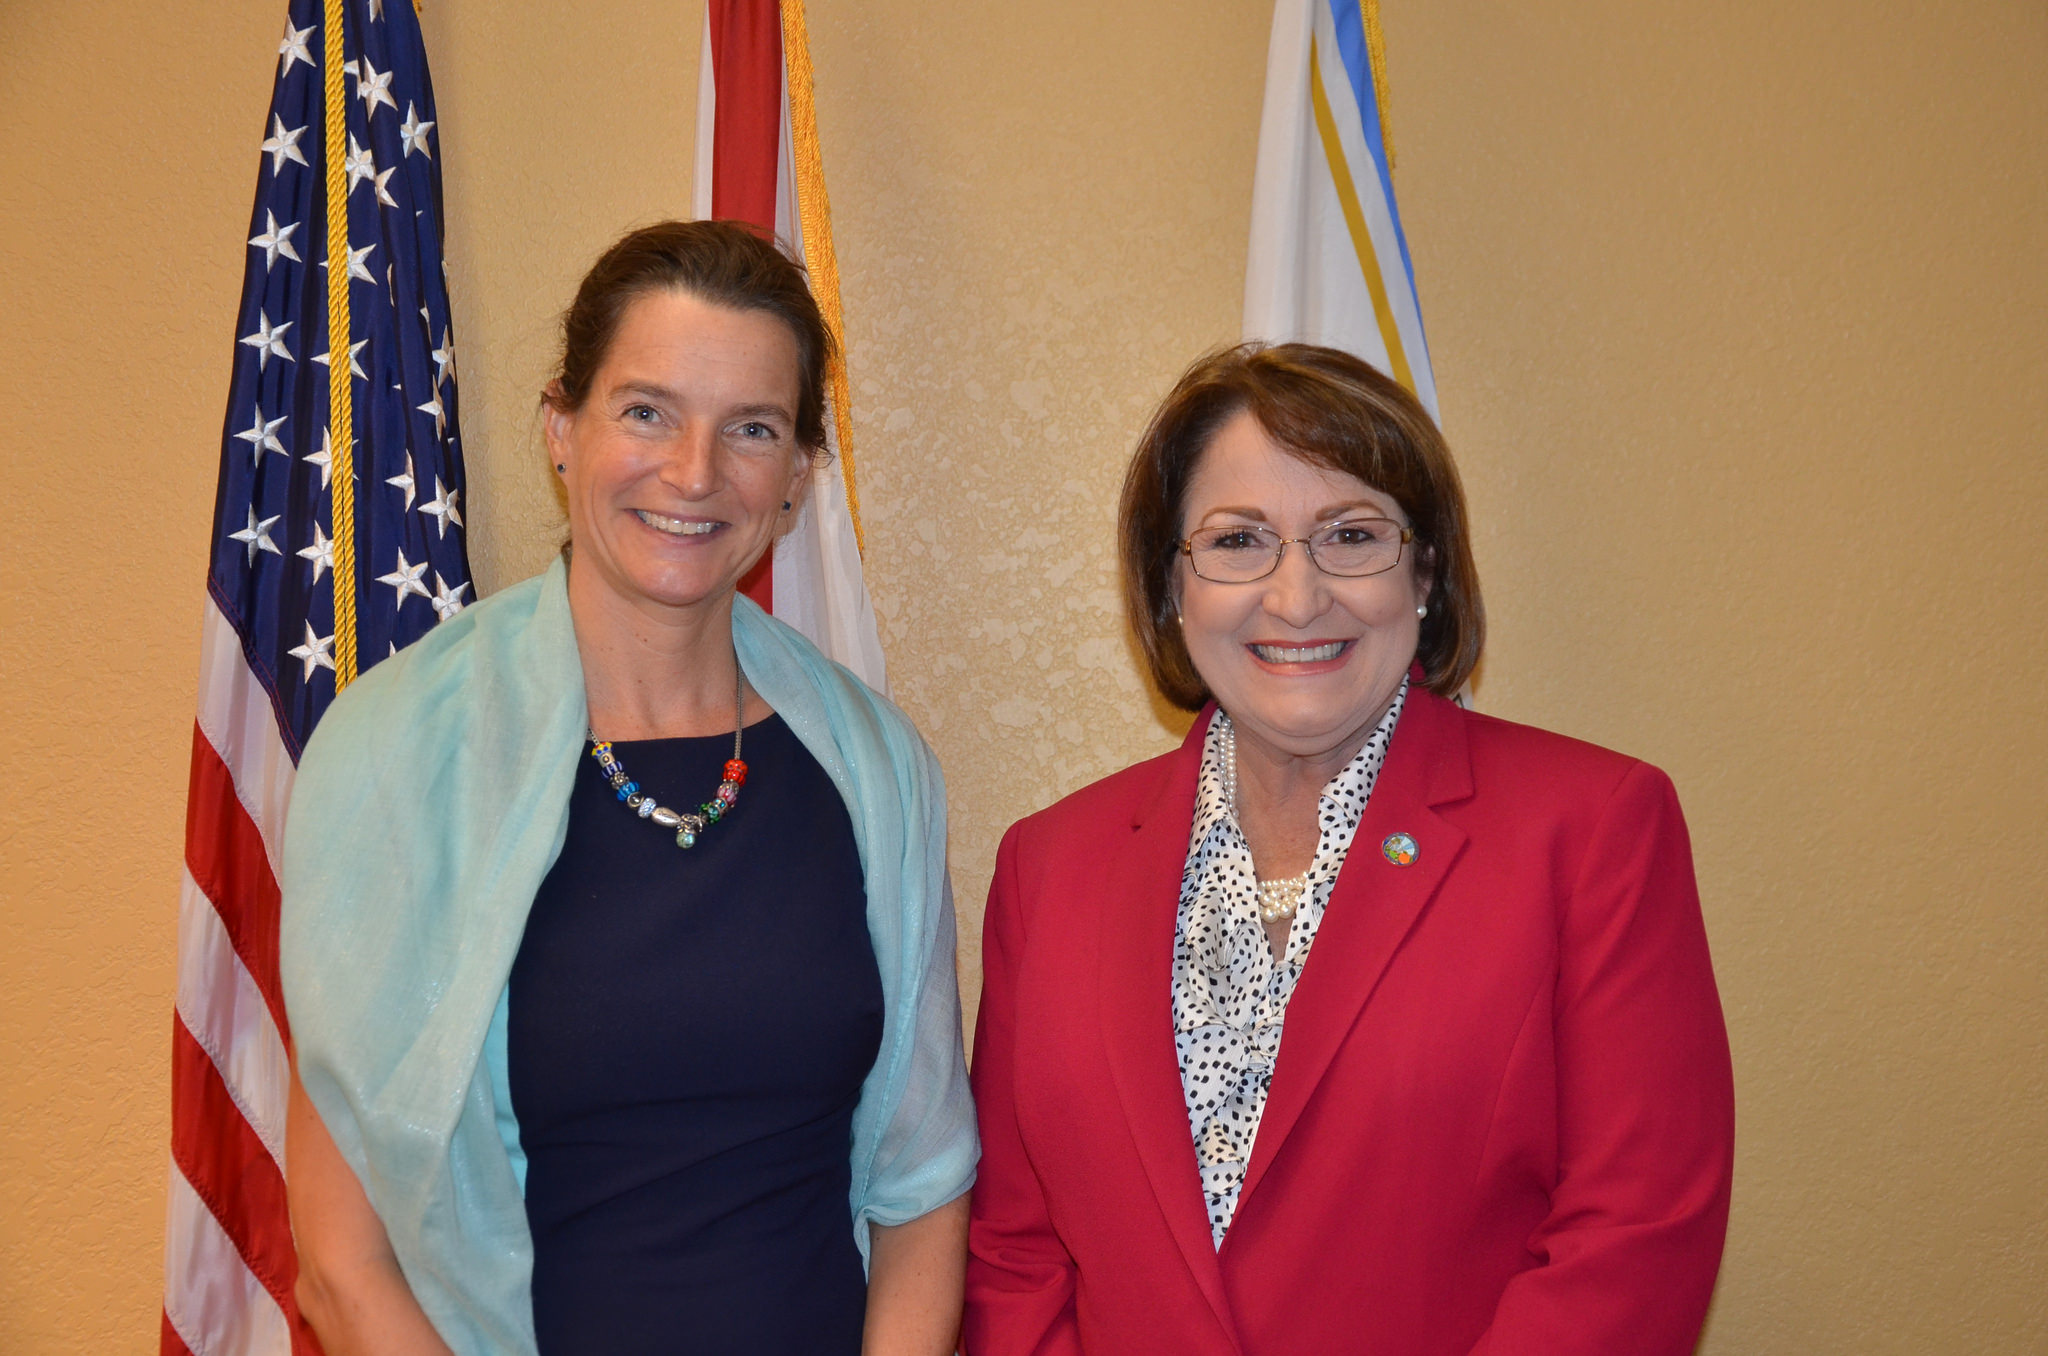 Mayor Jacobs with consul of the Netherlands